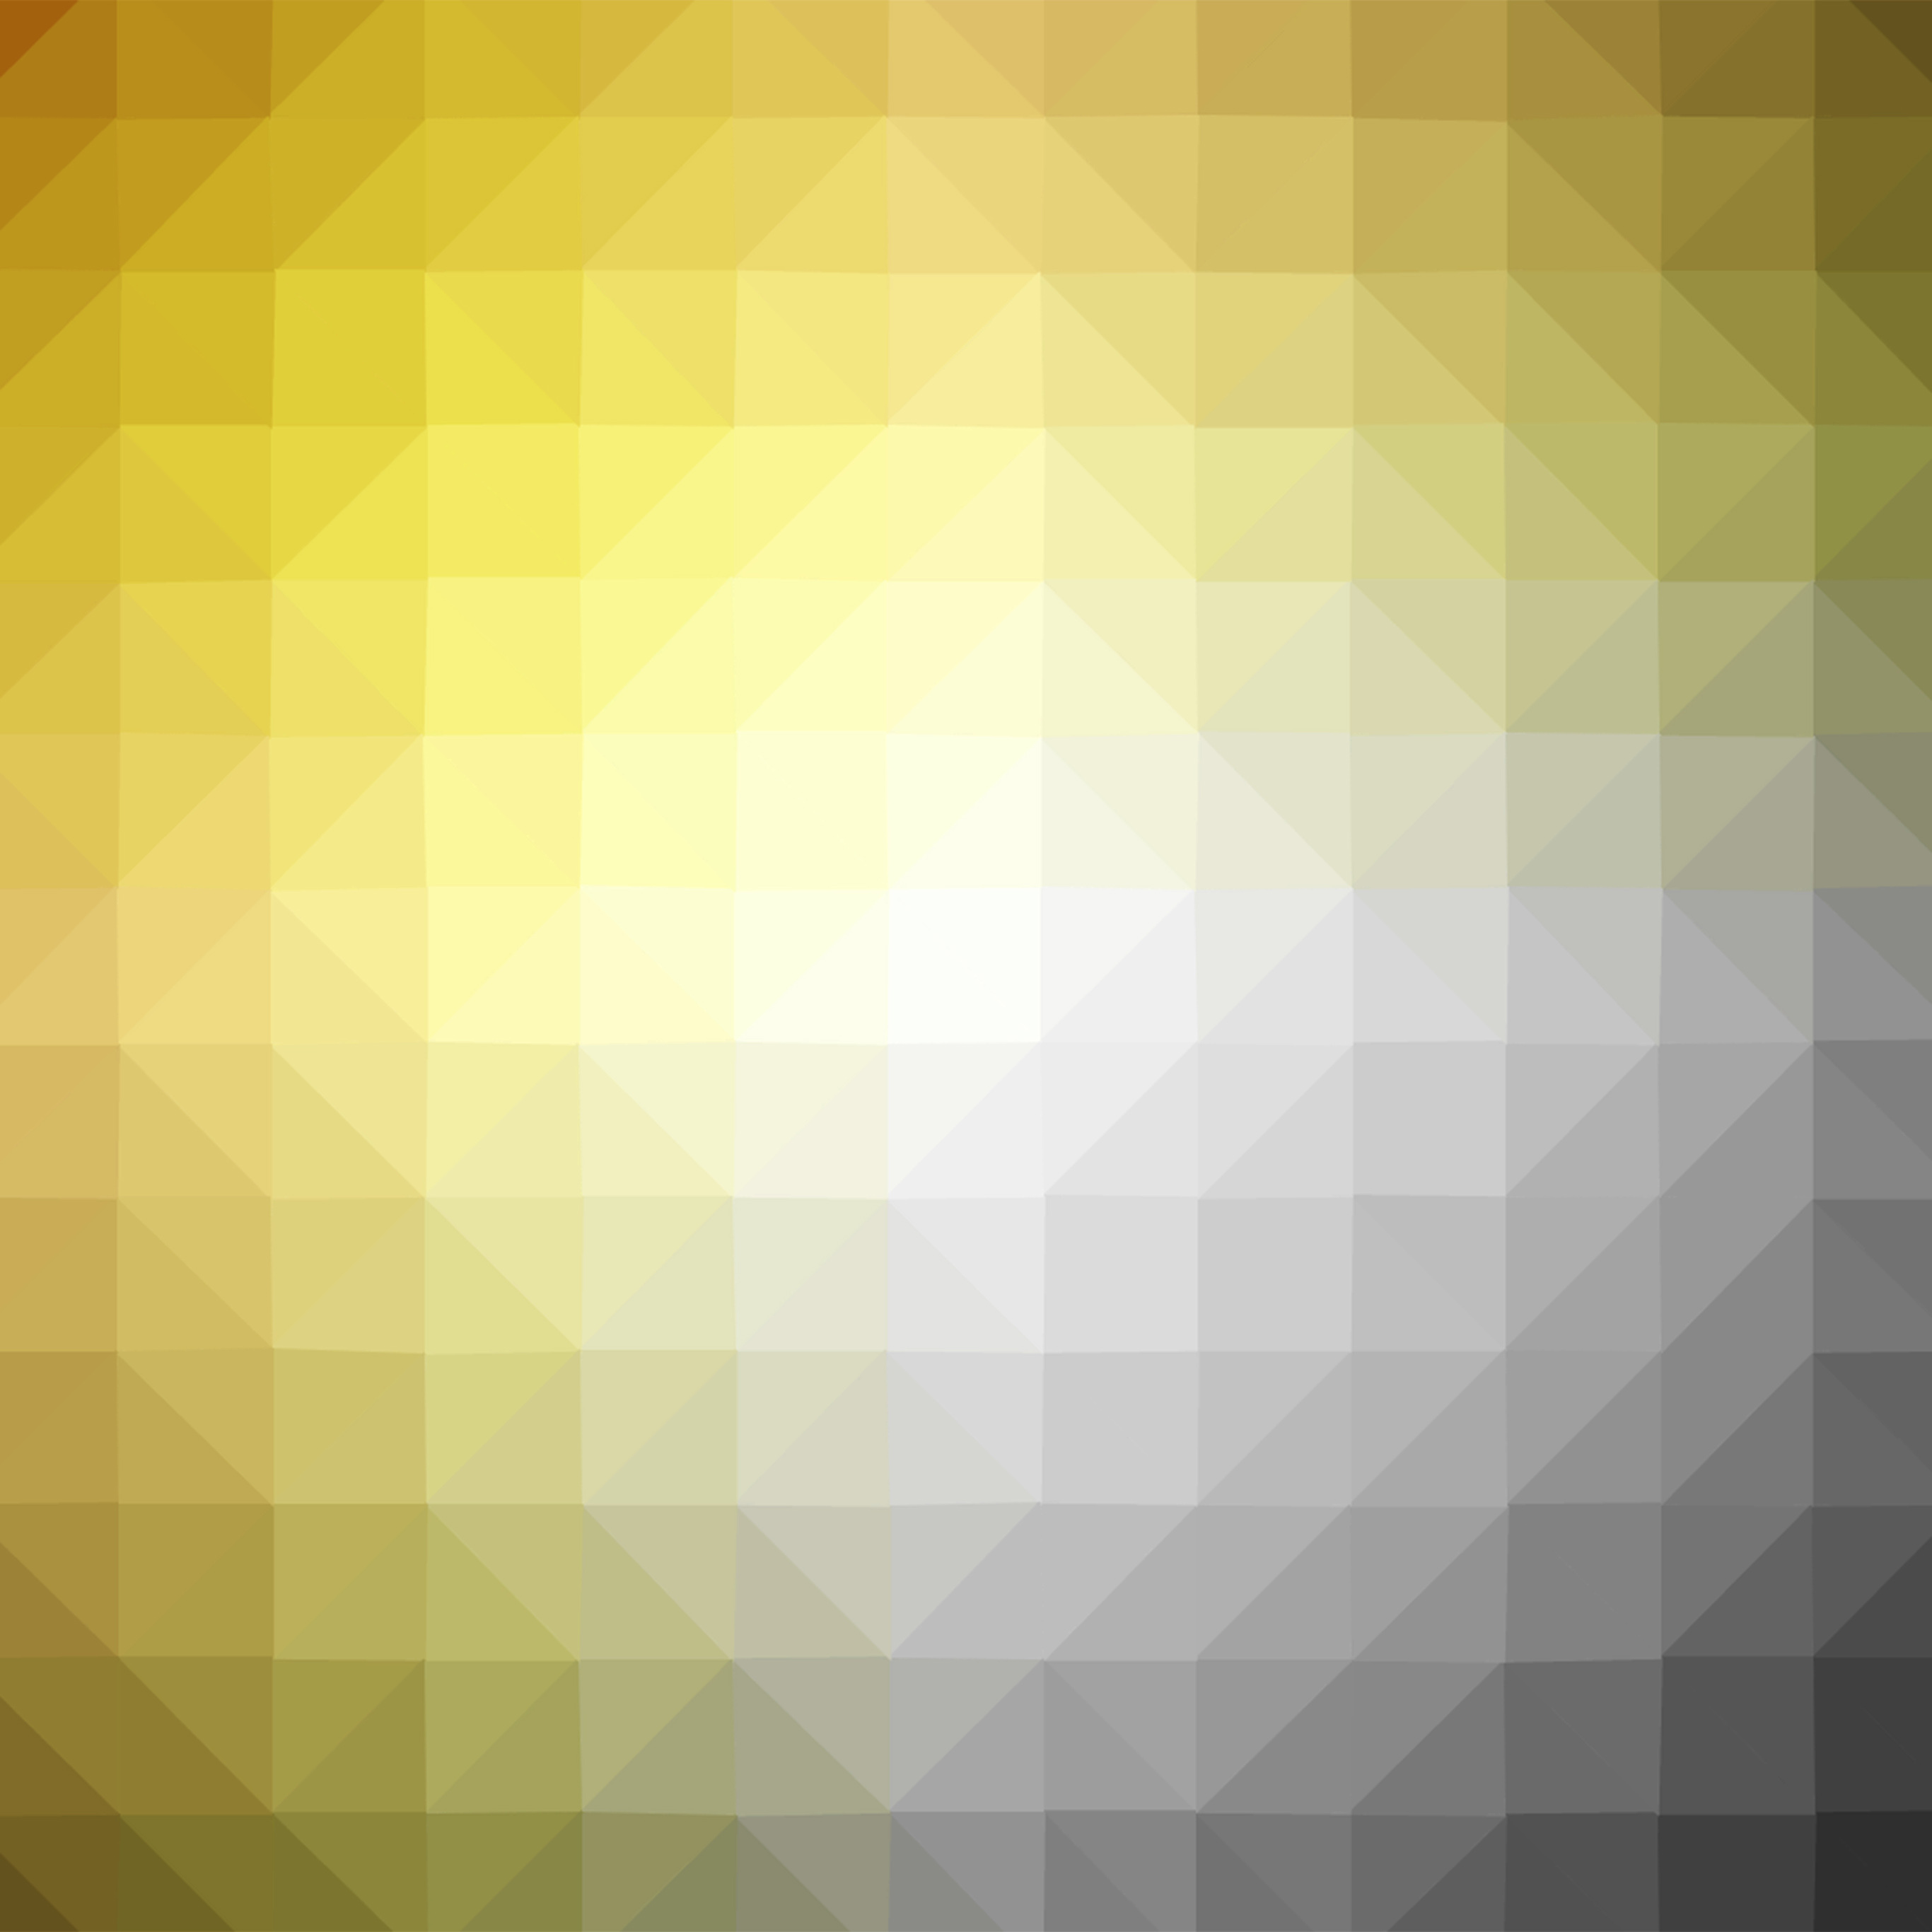 Vk38-tri-abstract-yellow